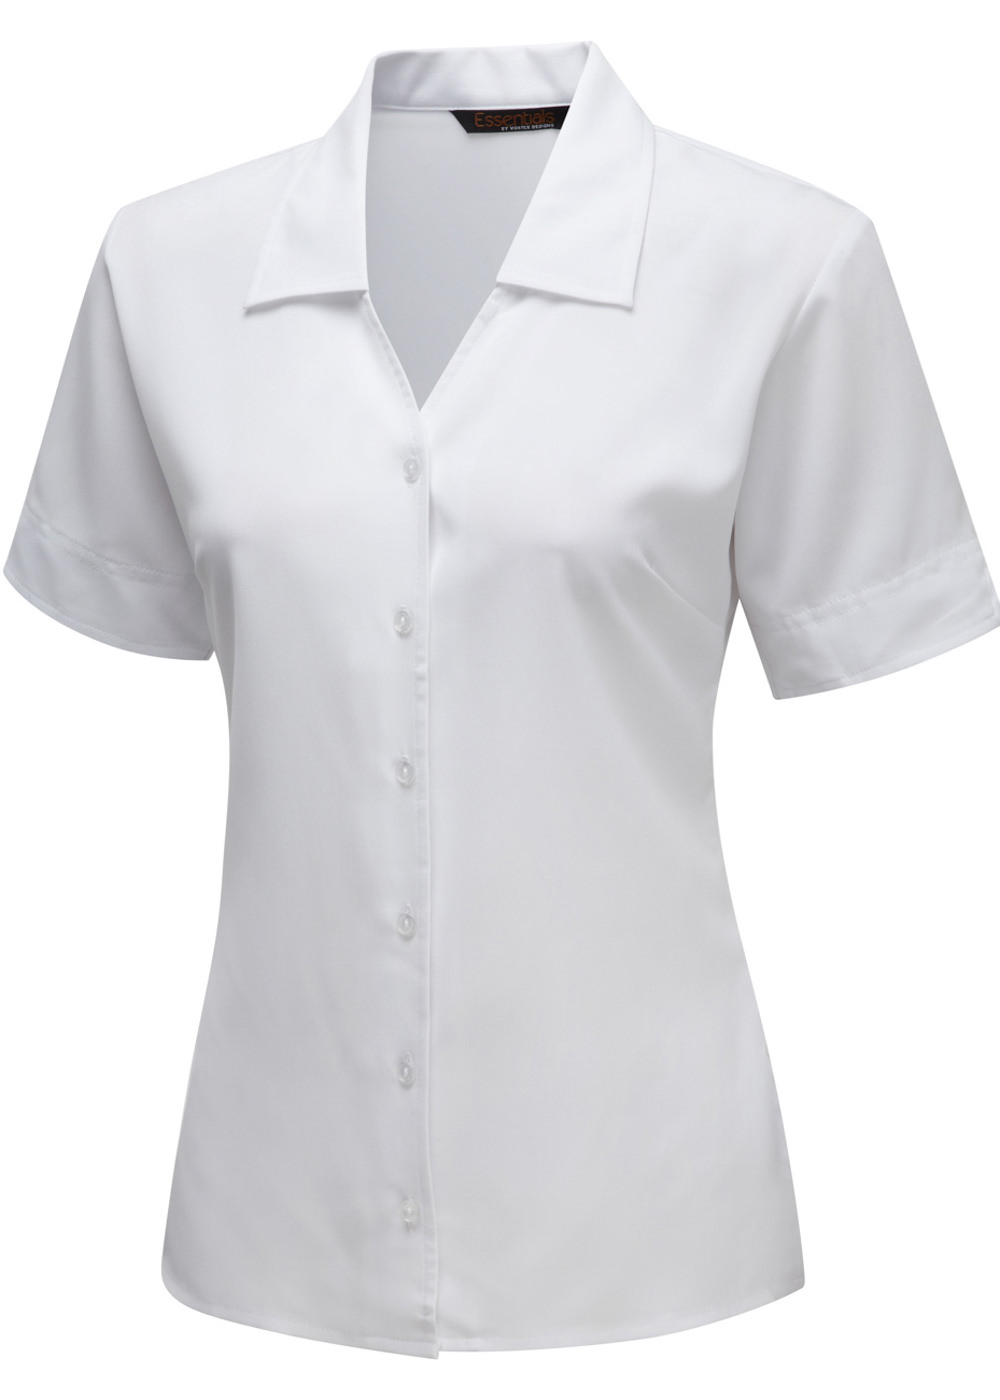 LILLIE - V-neck Stretch blouse with cut-away sleeve detail